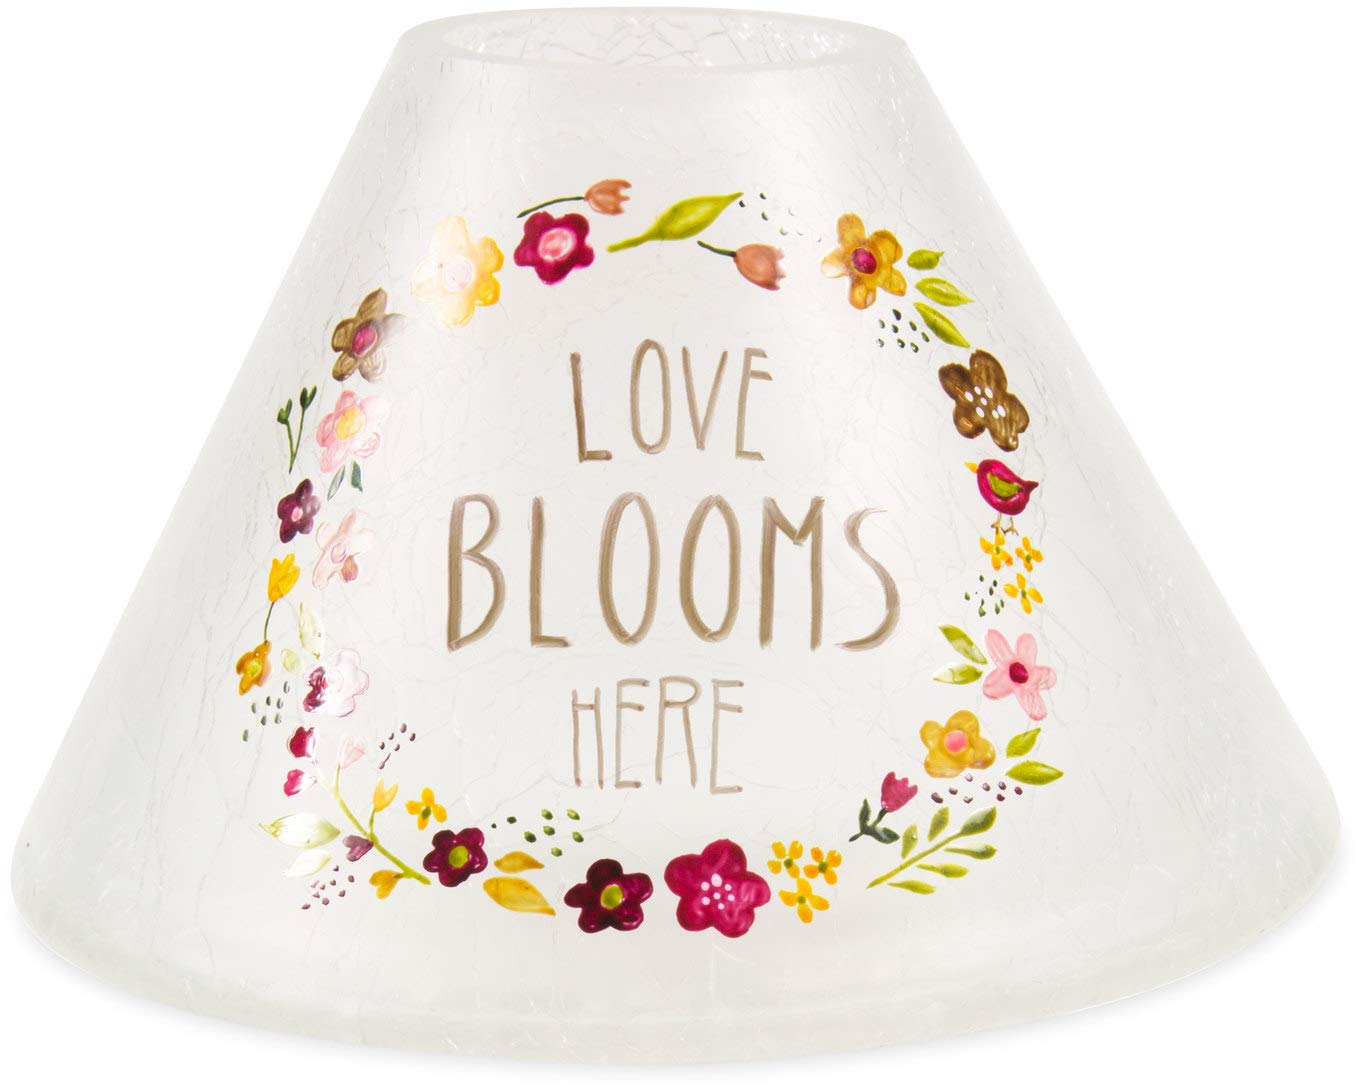 Pavilion Gift Company Love Blooms Here-Hand Painted Floral Frosted and Crackled Glass Jar Large Candle Shade 55250